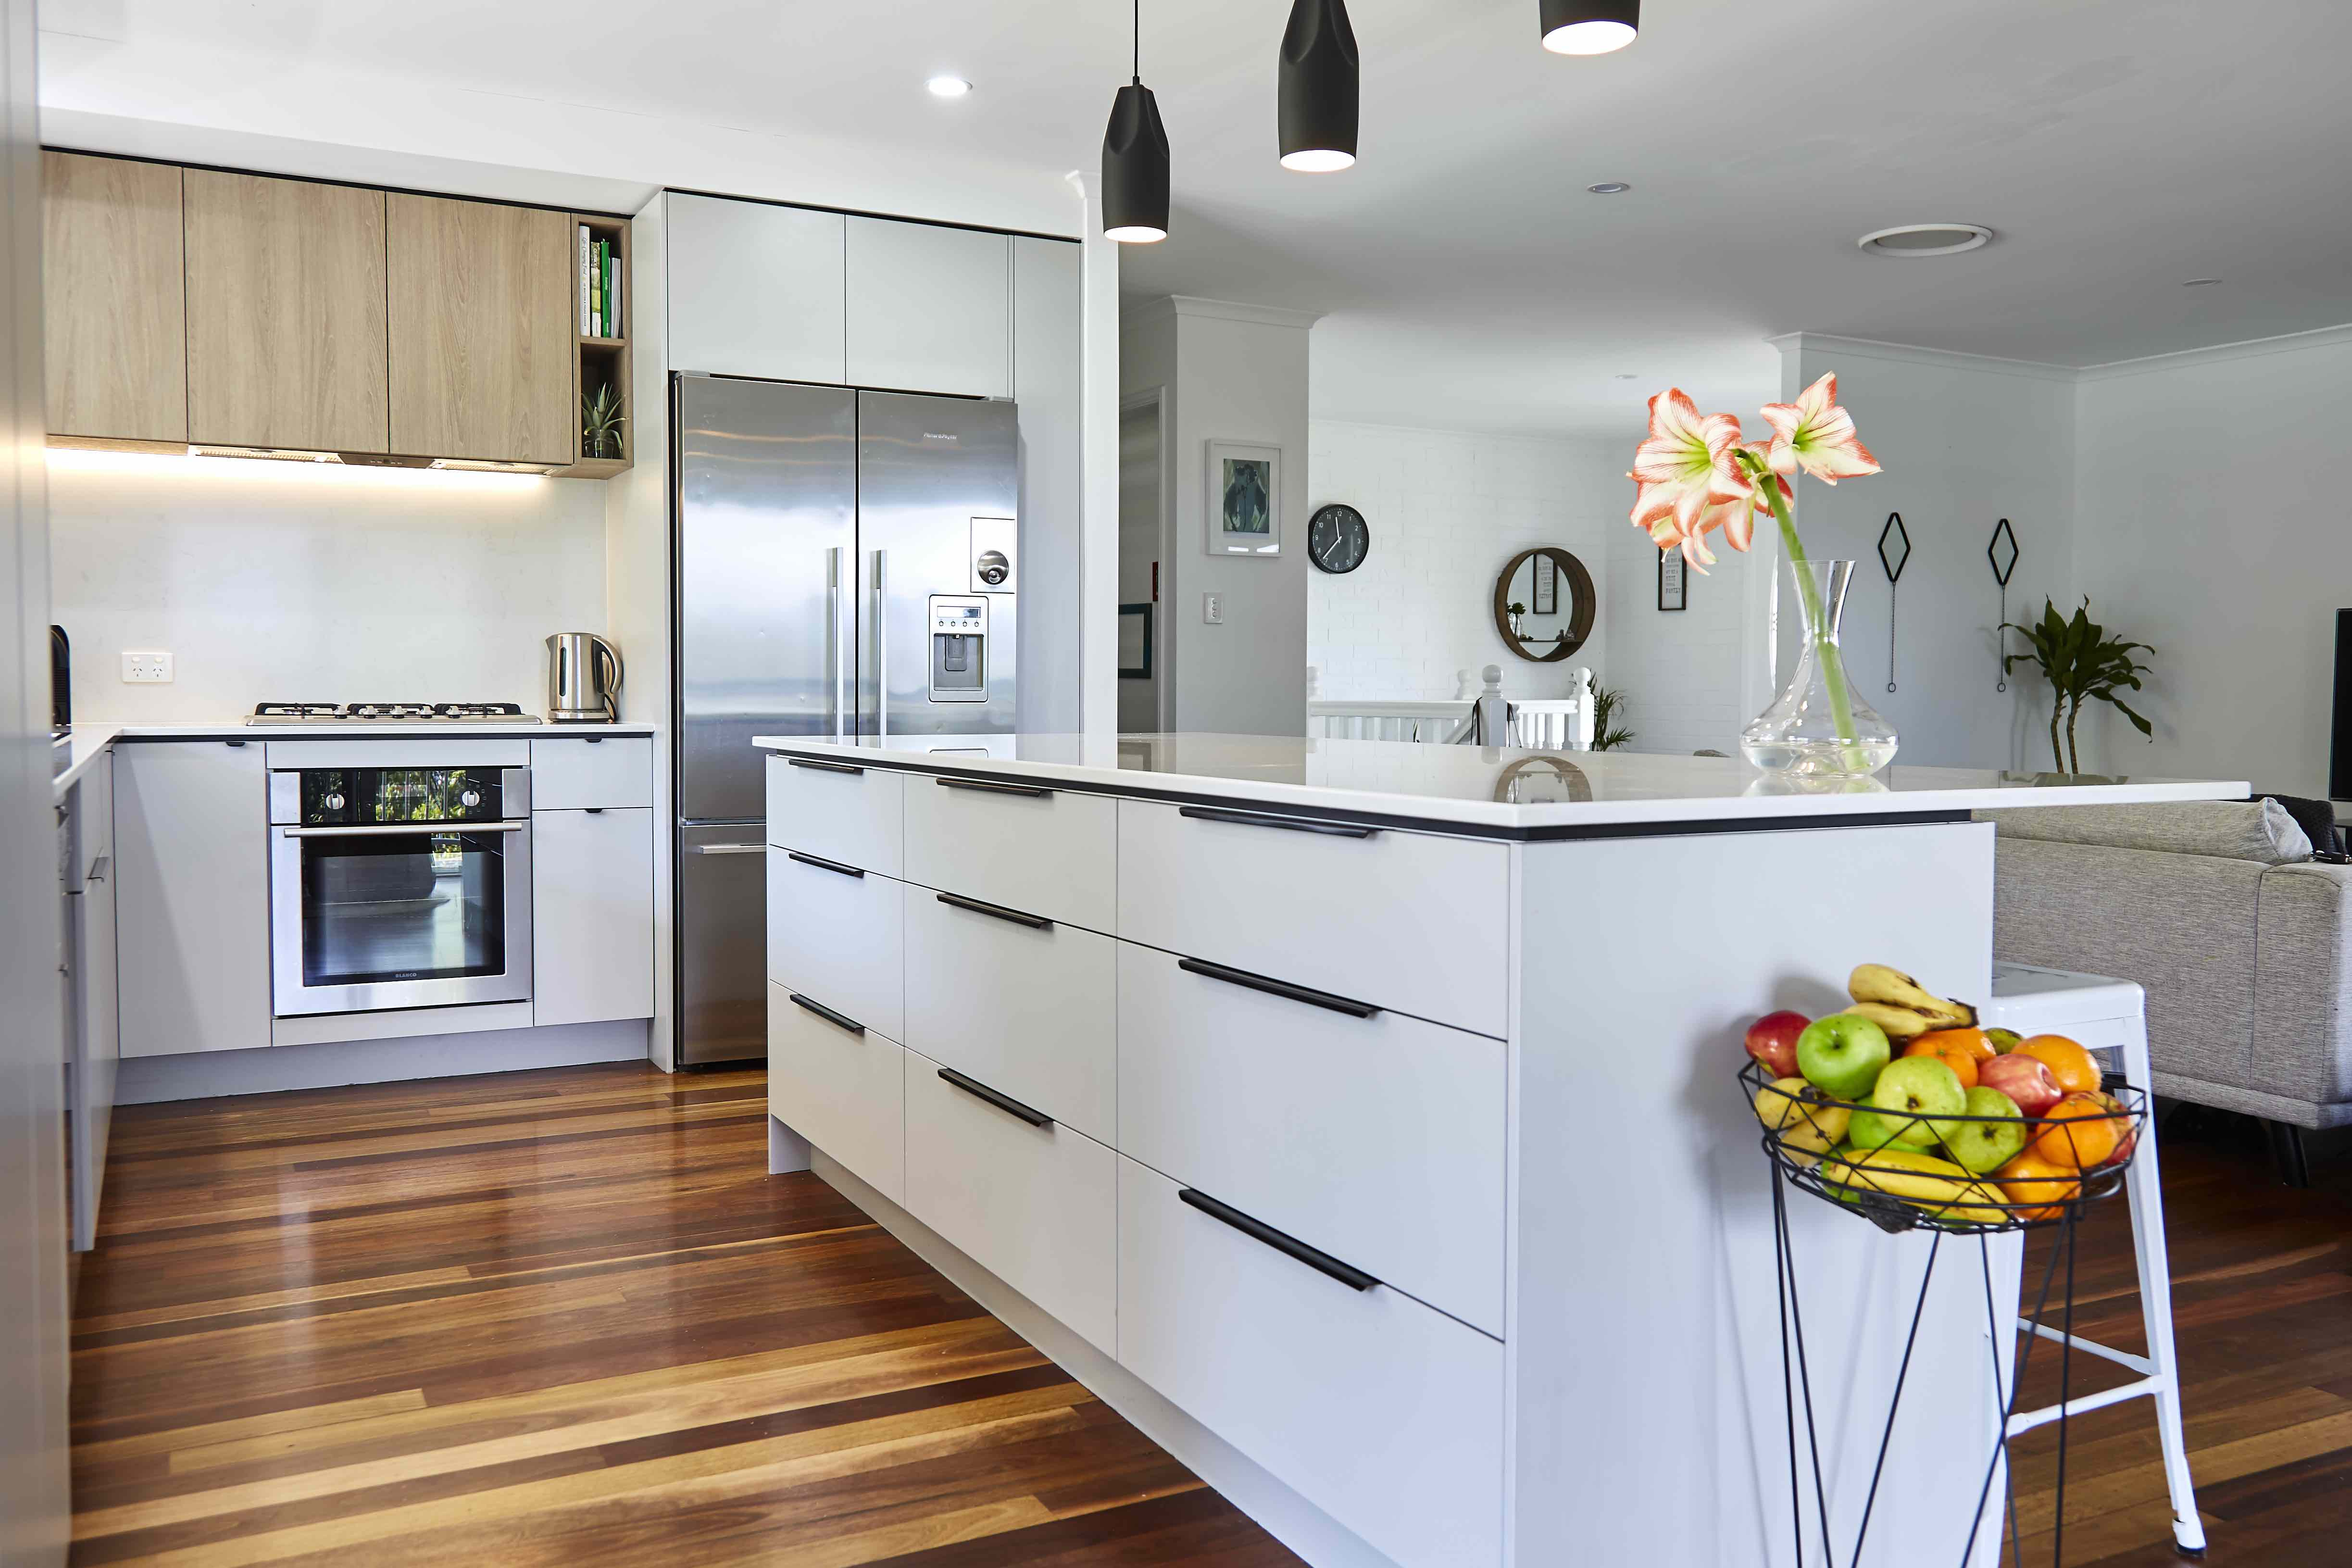 Modern grey kitchen island with black handles and timber flooring